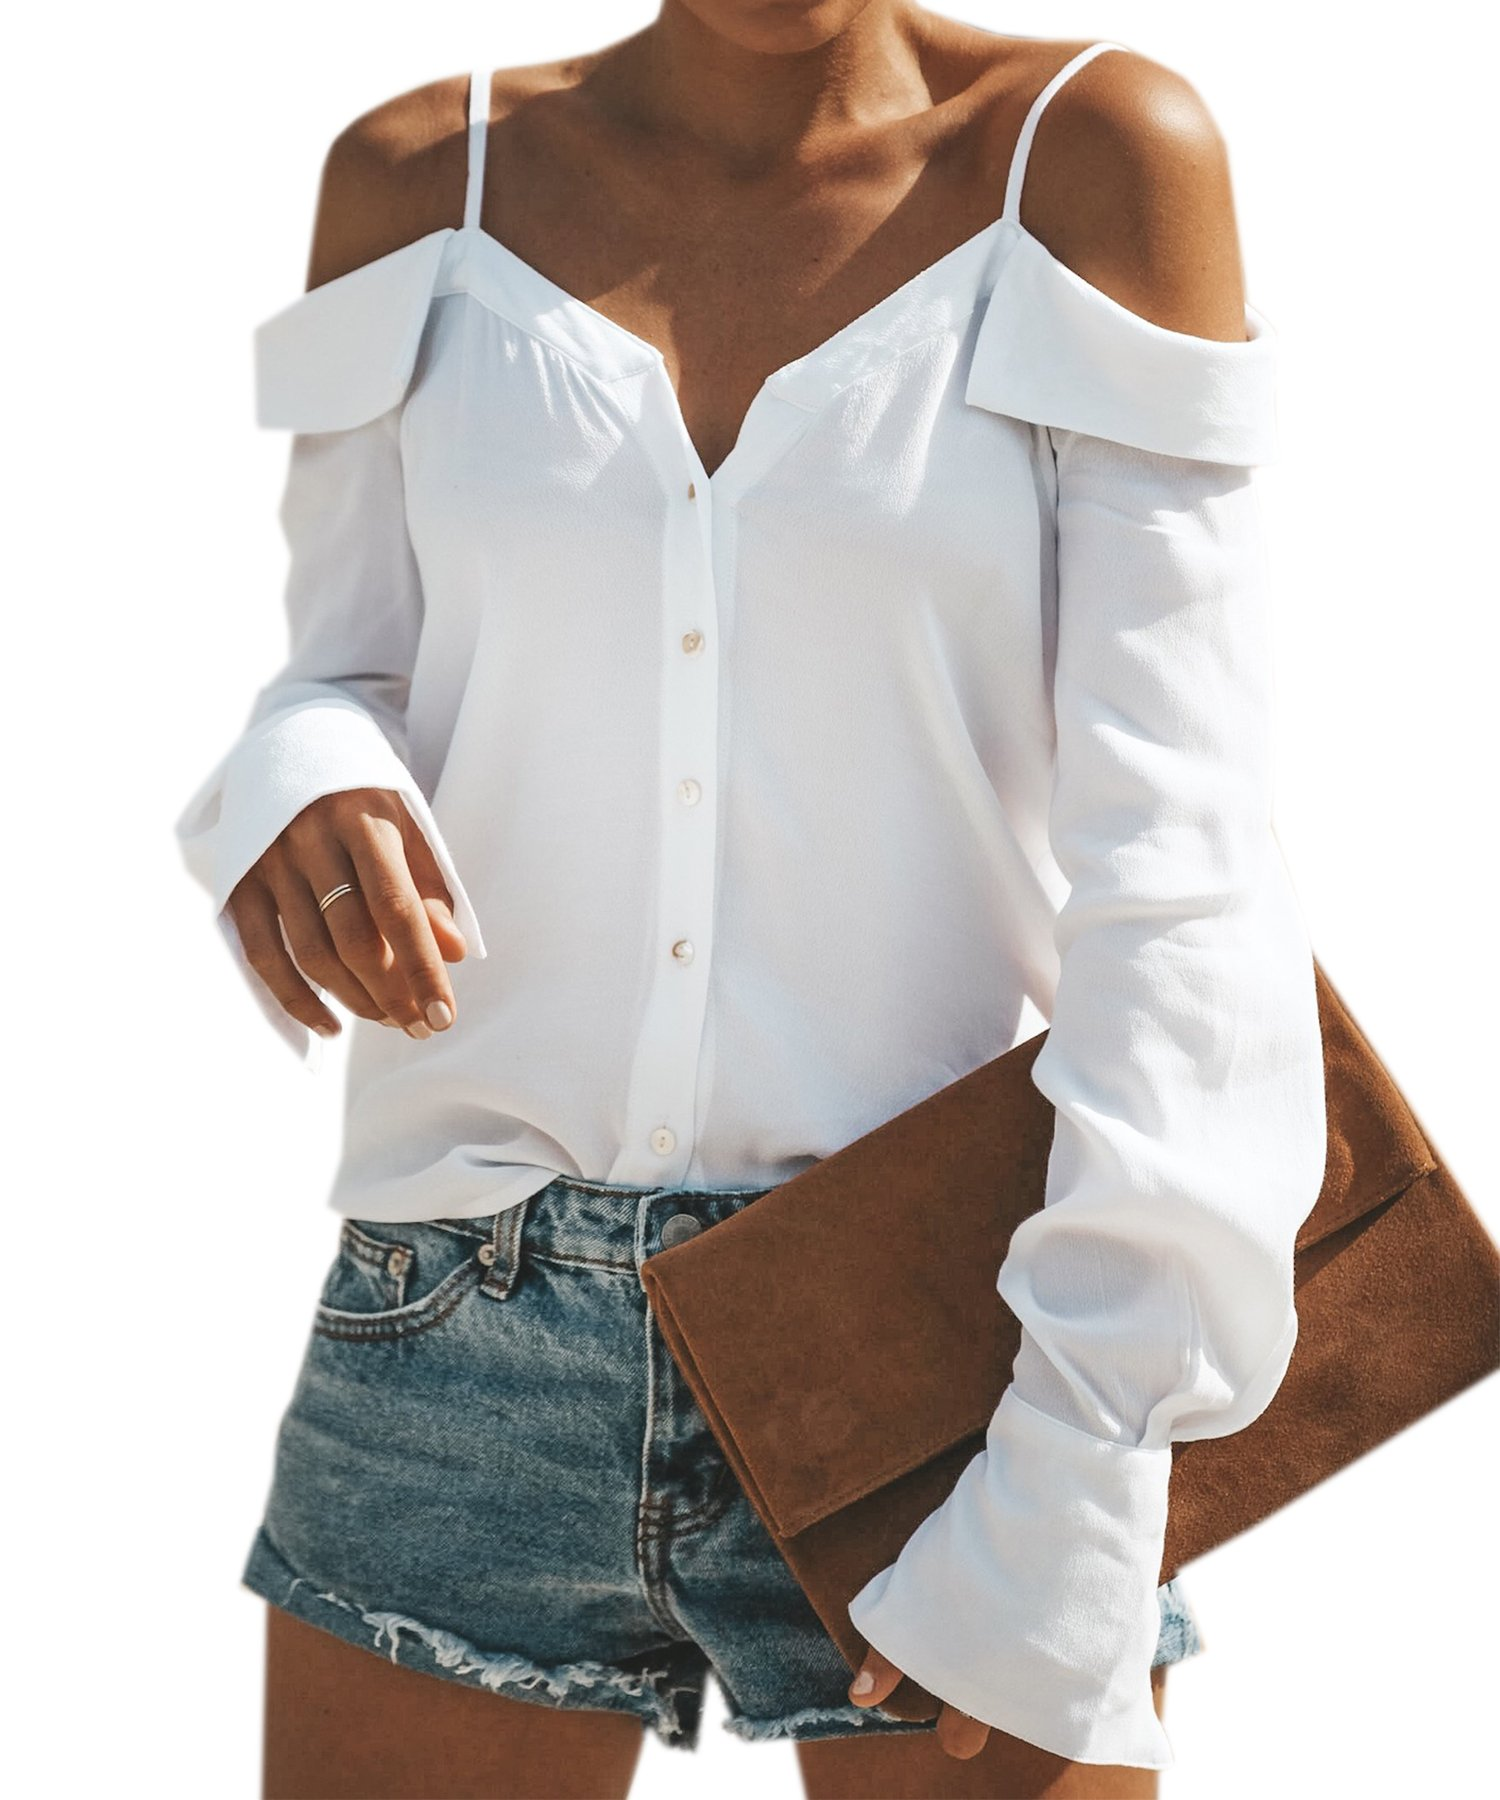 ECOWISH Womens Shirts Sexy Spaghetti Strap Off Shoulder Long Sleeve Shirts Casual Button Down Blouse Tops White L